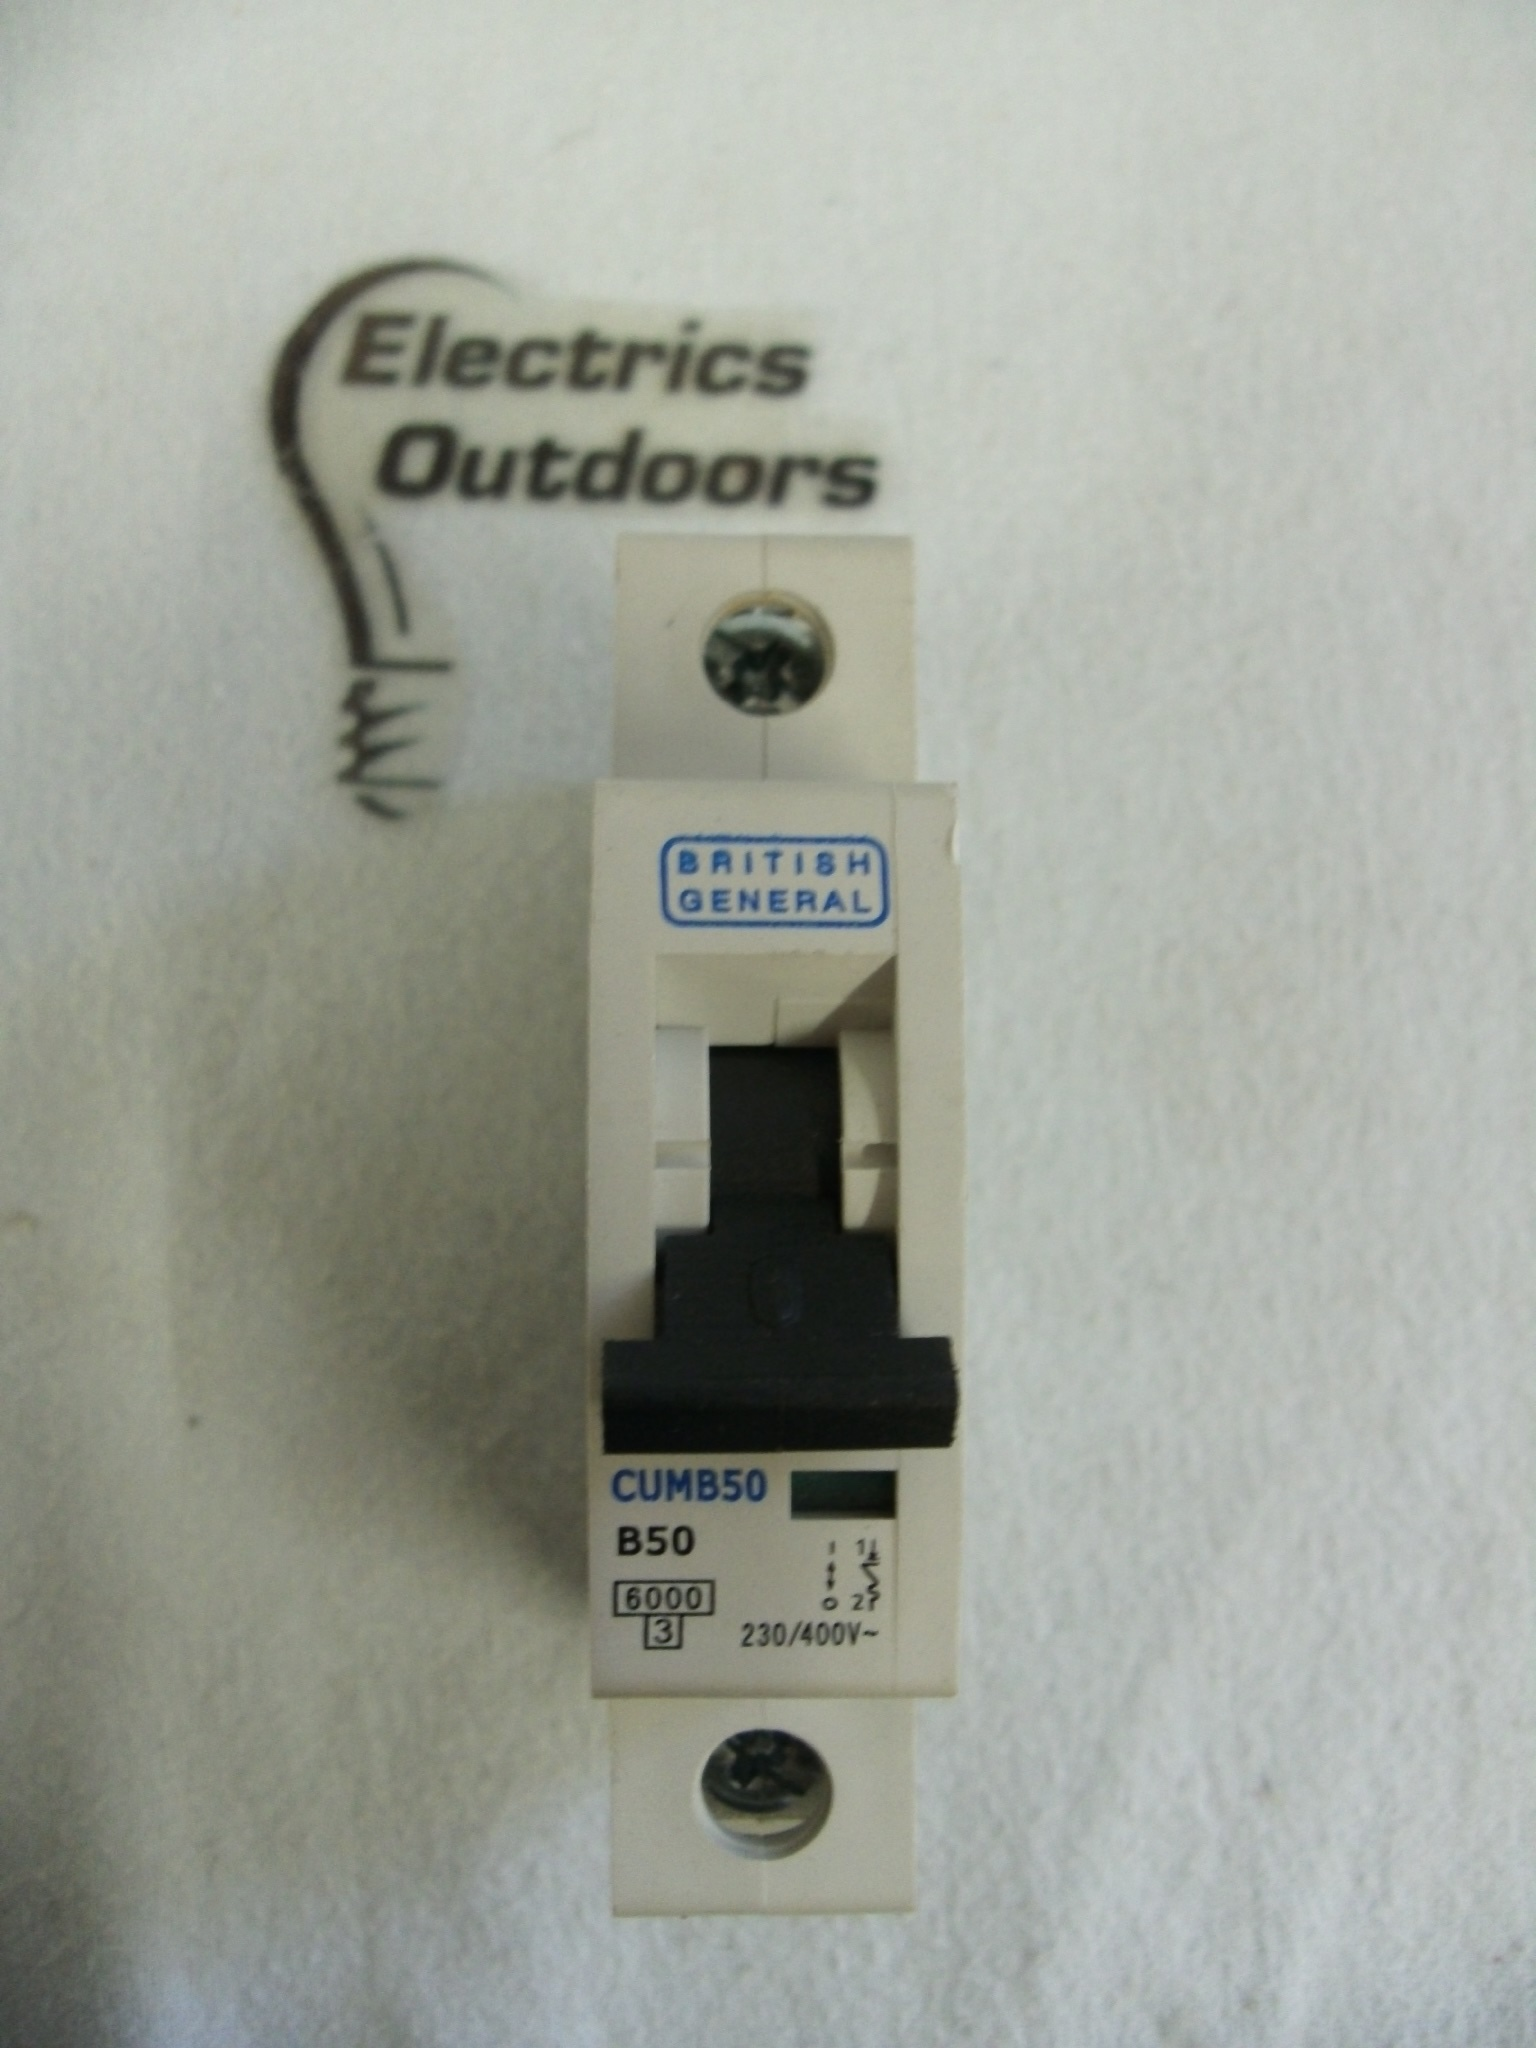 BRITISH GENERAL 50 AMP TYPE B 6 kA MCB CIRCUIT BREAKER 230V CUMB50 BS EN 60898